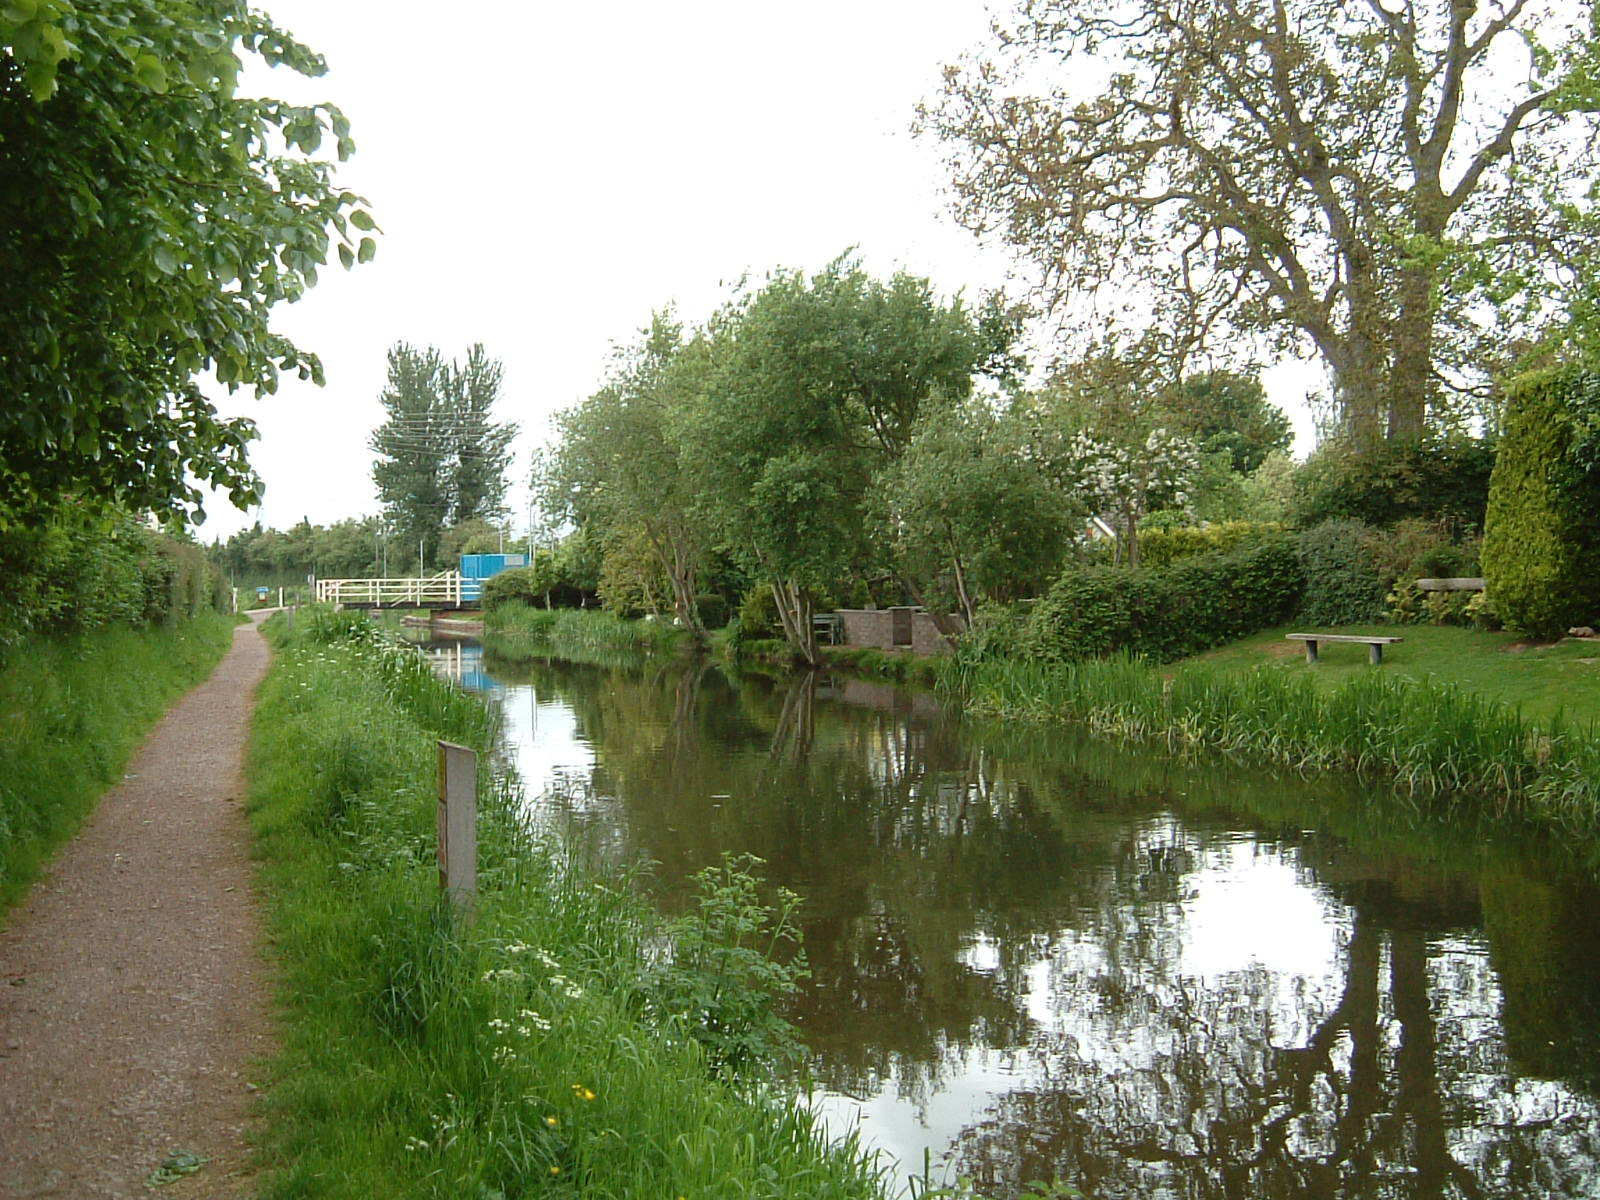 The Bridgwater and Taunton Canal